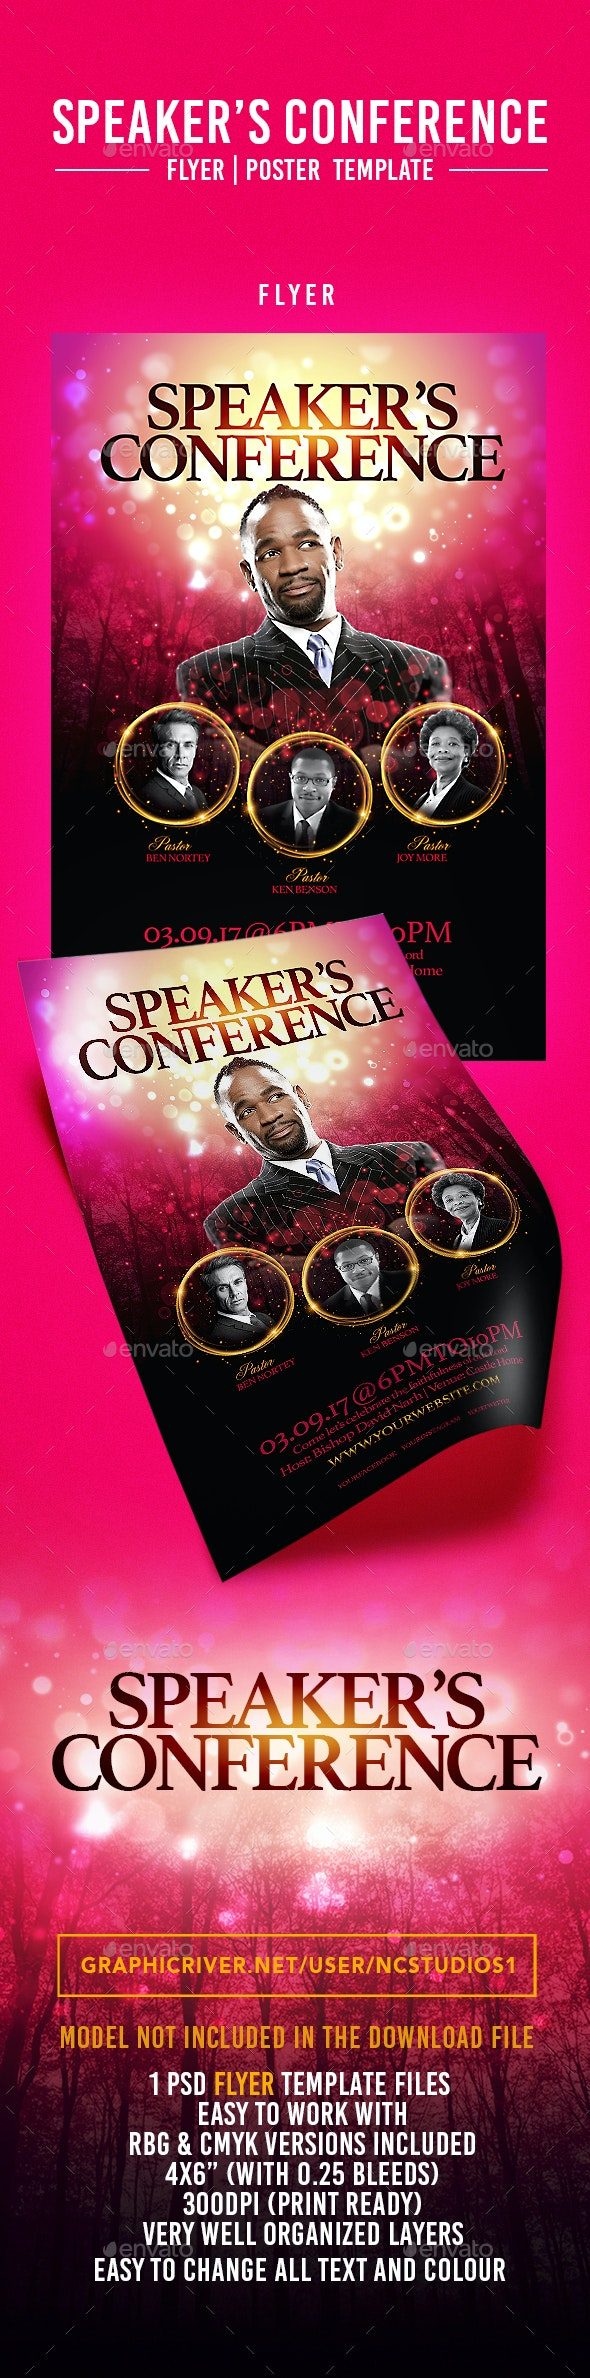 Speaker's Conference Flyer Template - Flyers Print Templates